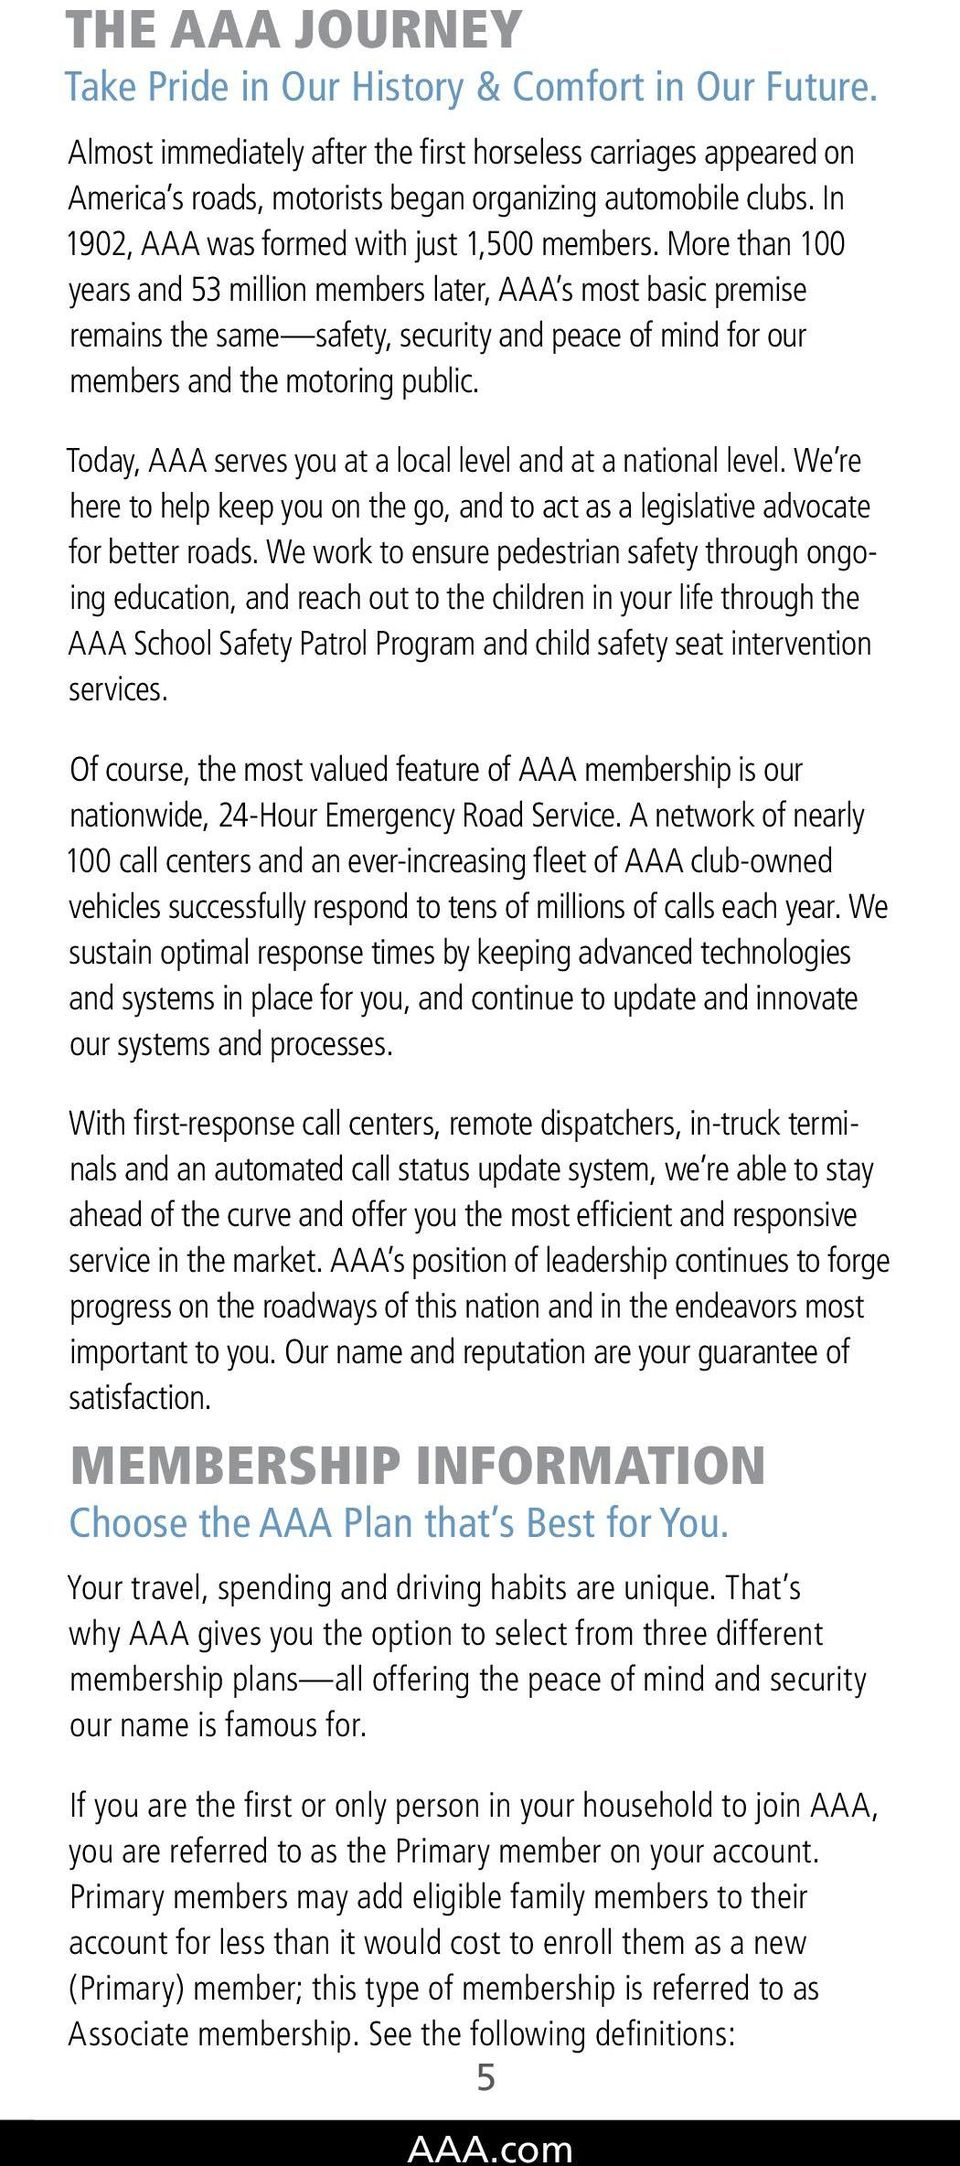 More than 100 years and 53 million members later, AAA s most basic premise remains the same safety, security and peace of mind for our members and the motoring public.